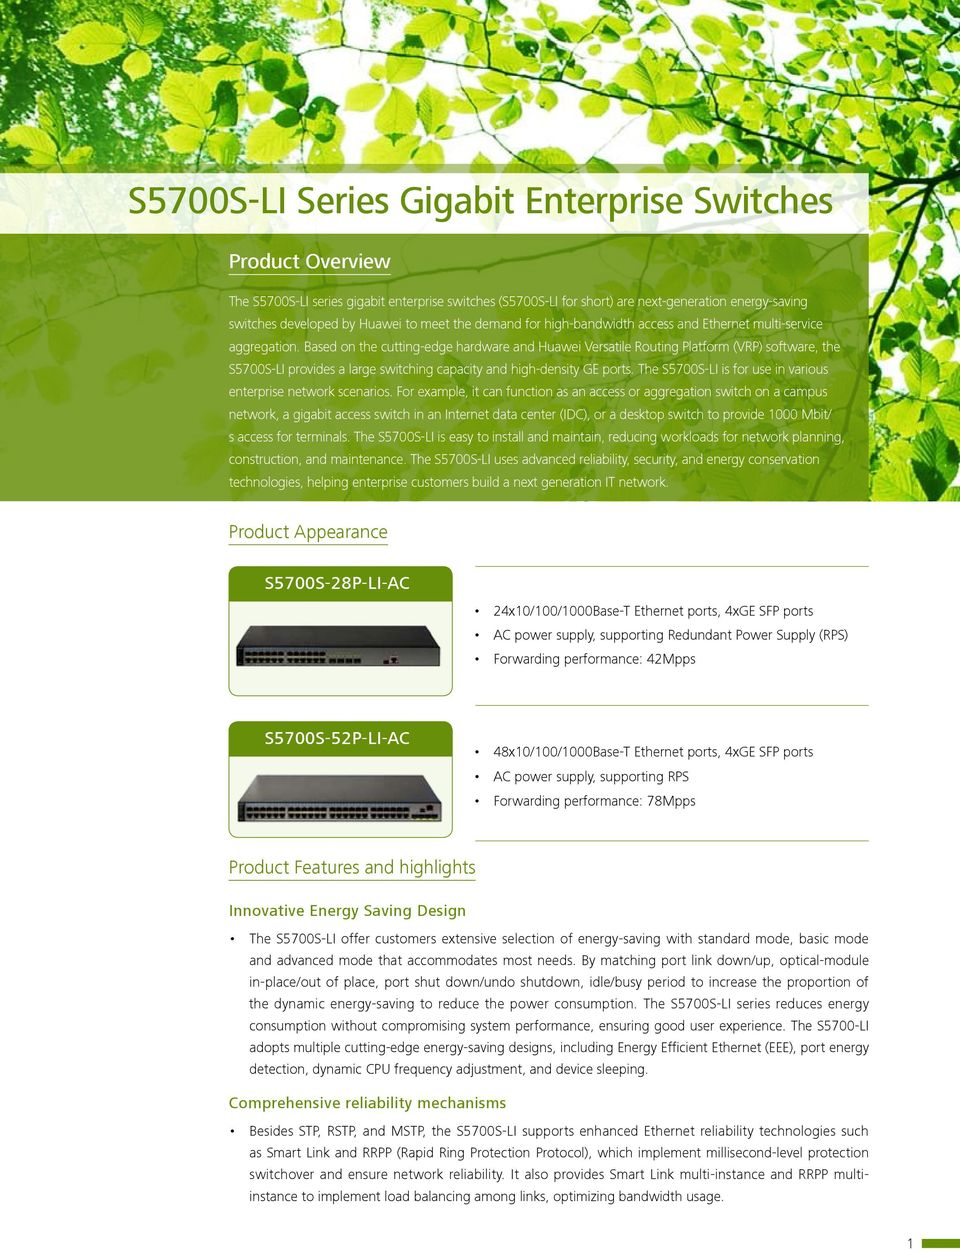 Based on the cutting-edge hardware and Huawei Versatile Routing Platform (VRP) software, the S5700S-LI provides a large switching capacity and high-density GE ports.